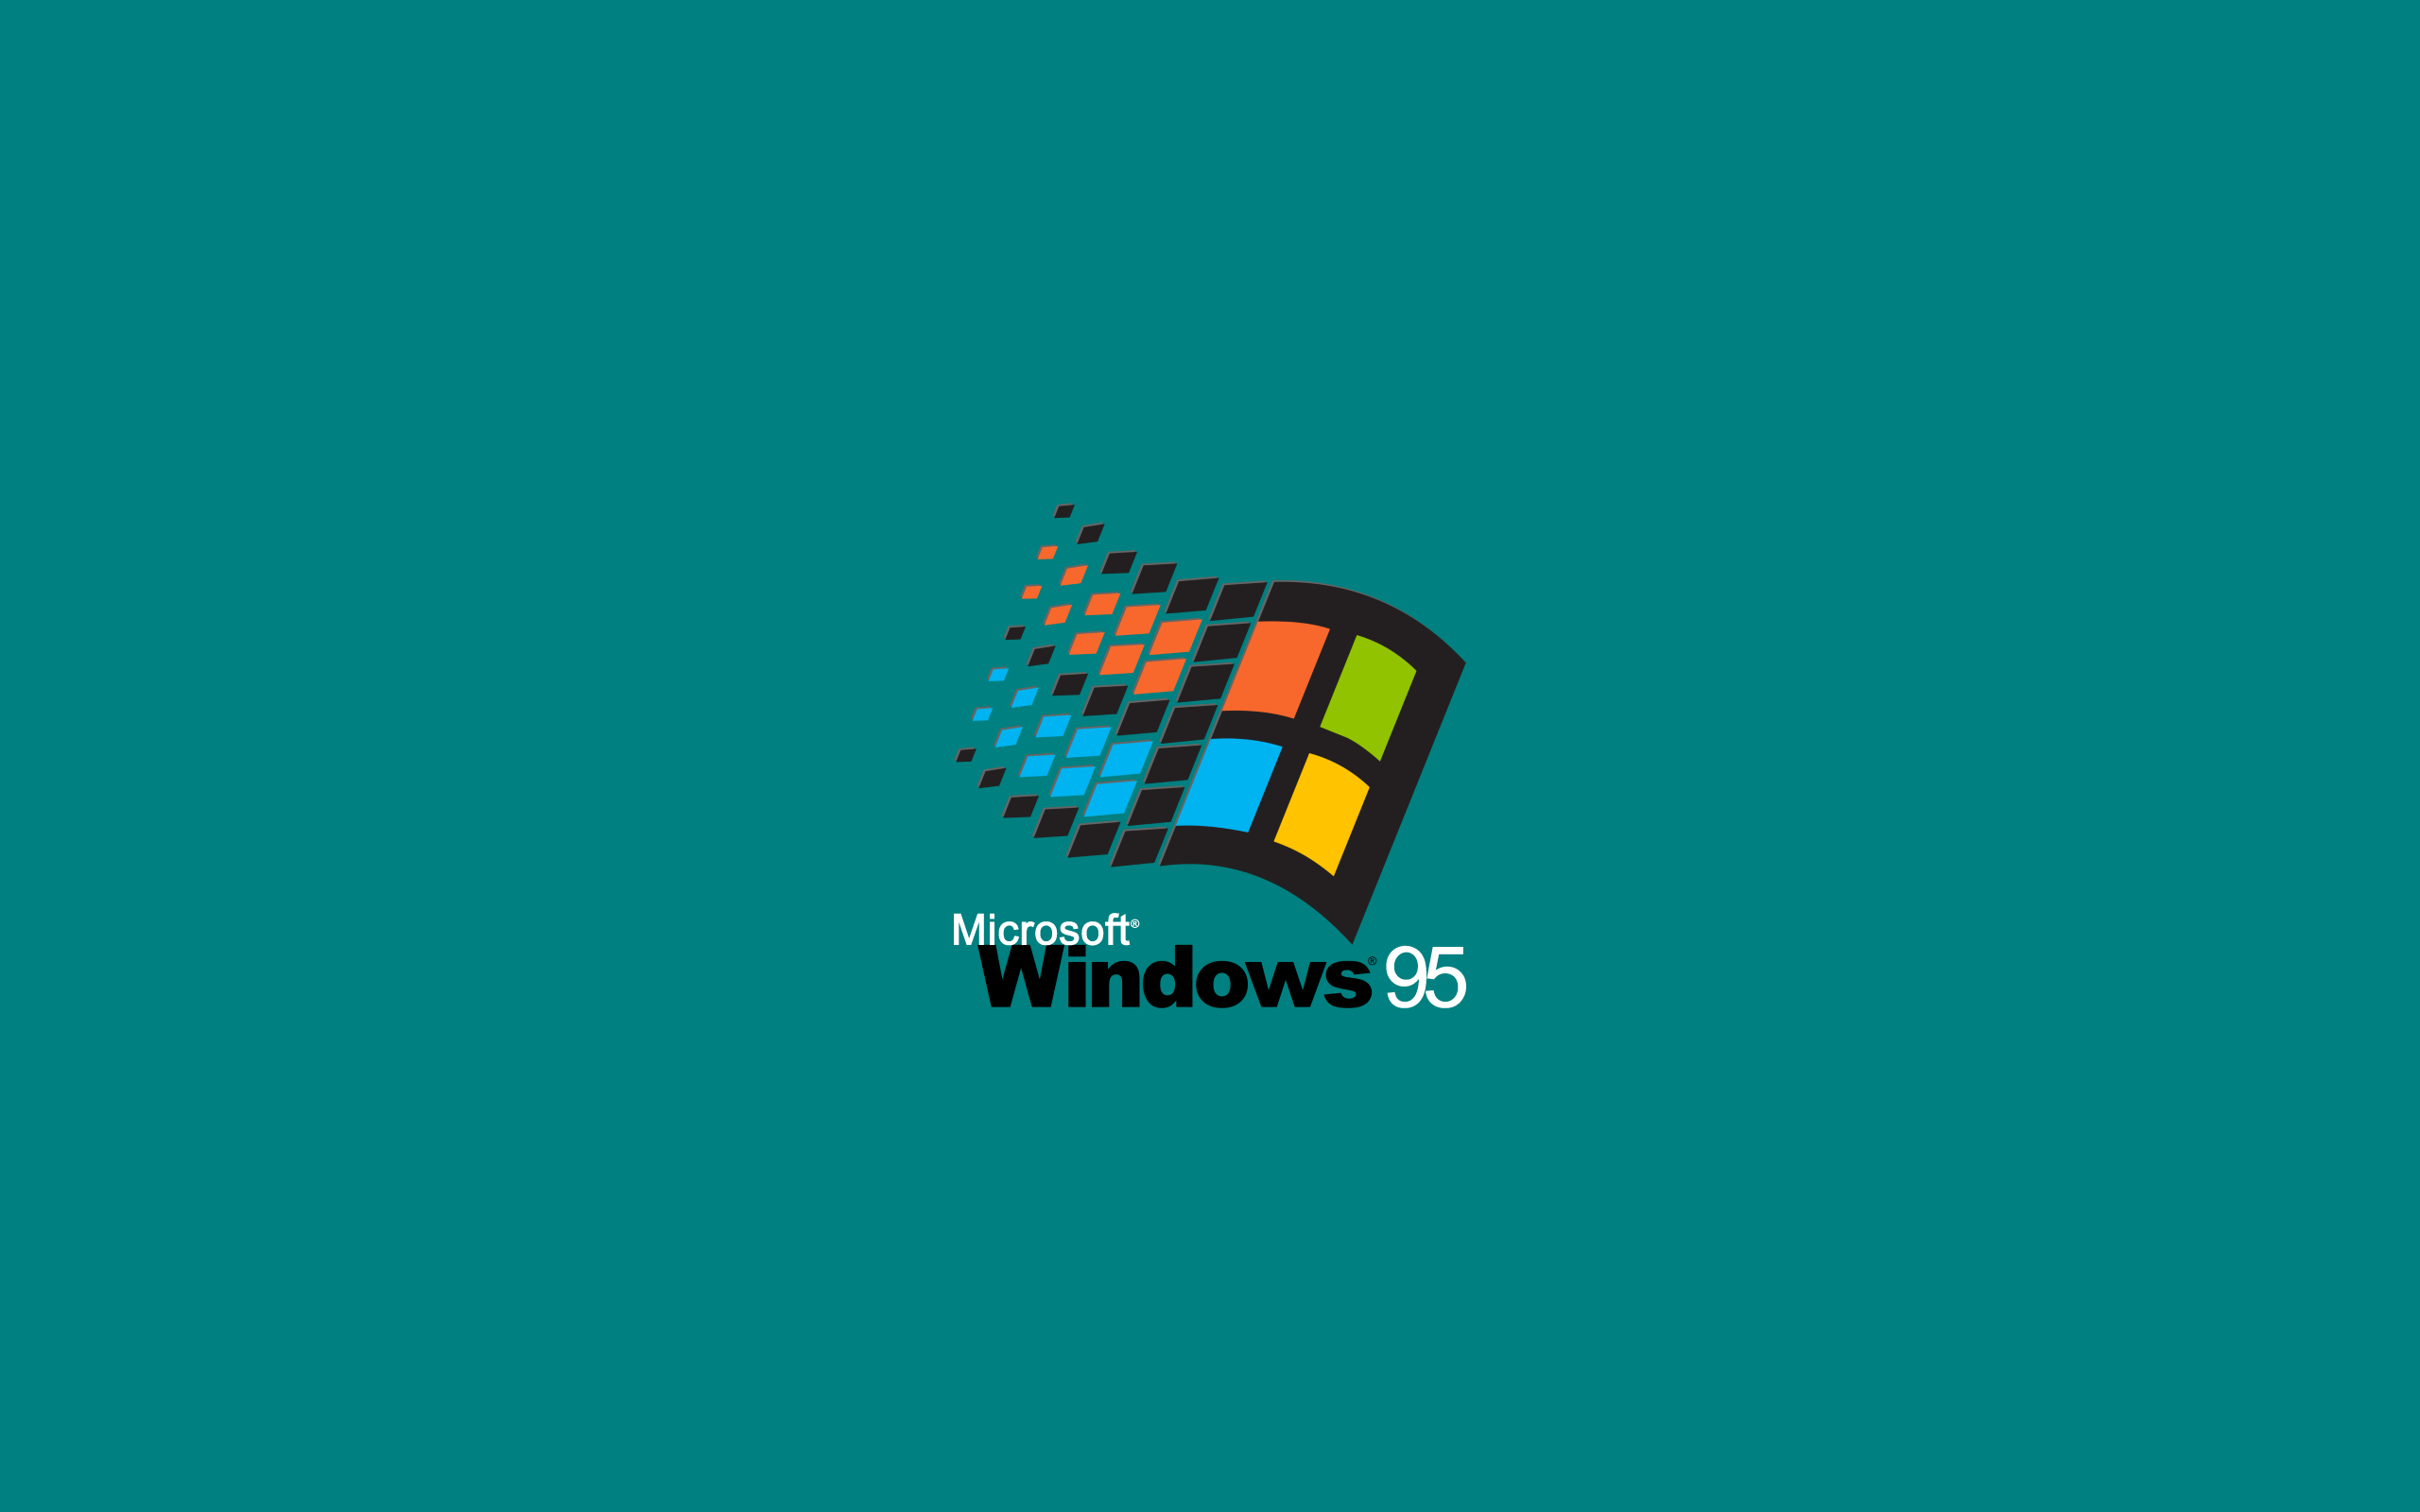 General 2560x1600 window Windows 95 Microsoft Windows Microsoft green background minimalism simple background simple logo computer nostalgia vintage teal